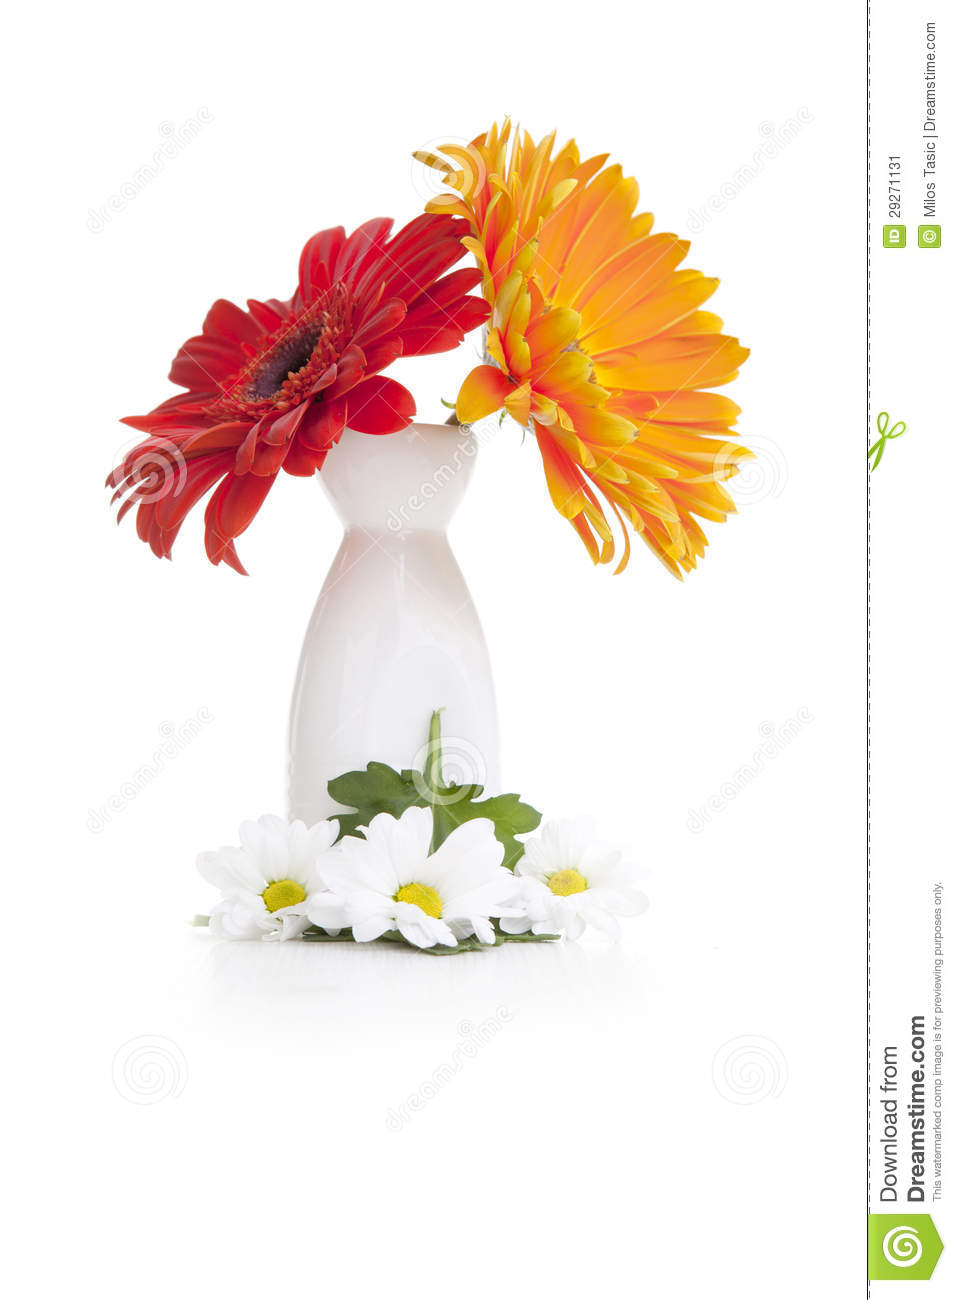 Red And Orange Daisy Flowers In White Vase Stock Image Image 29271131